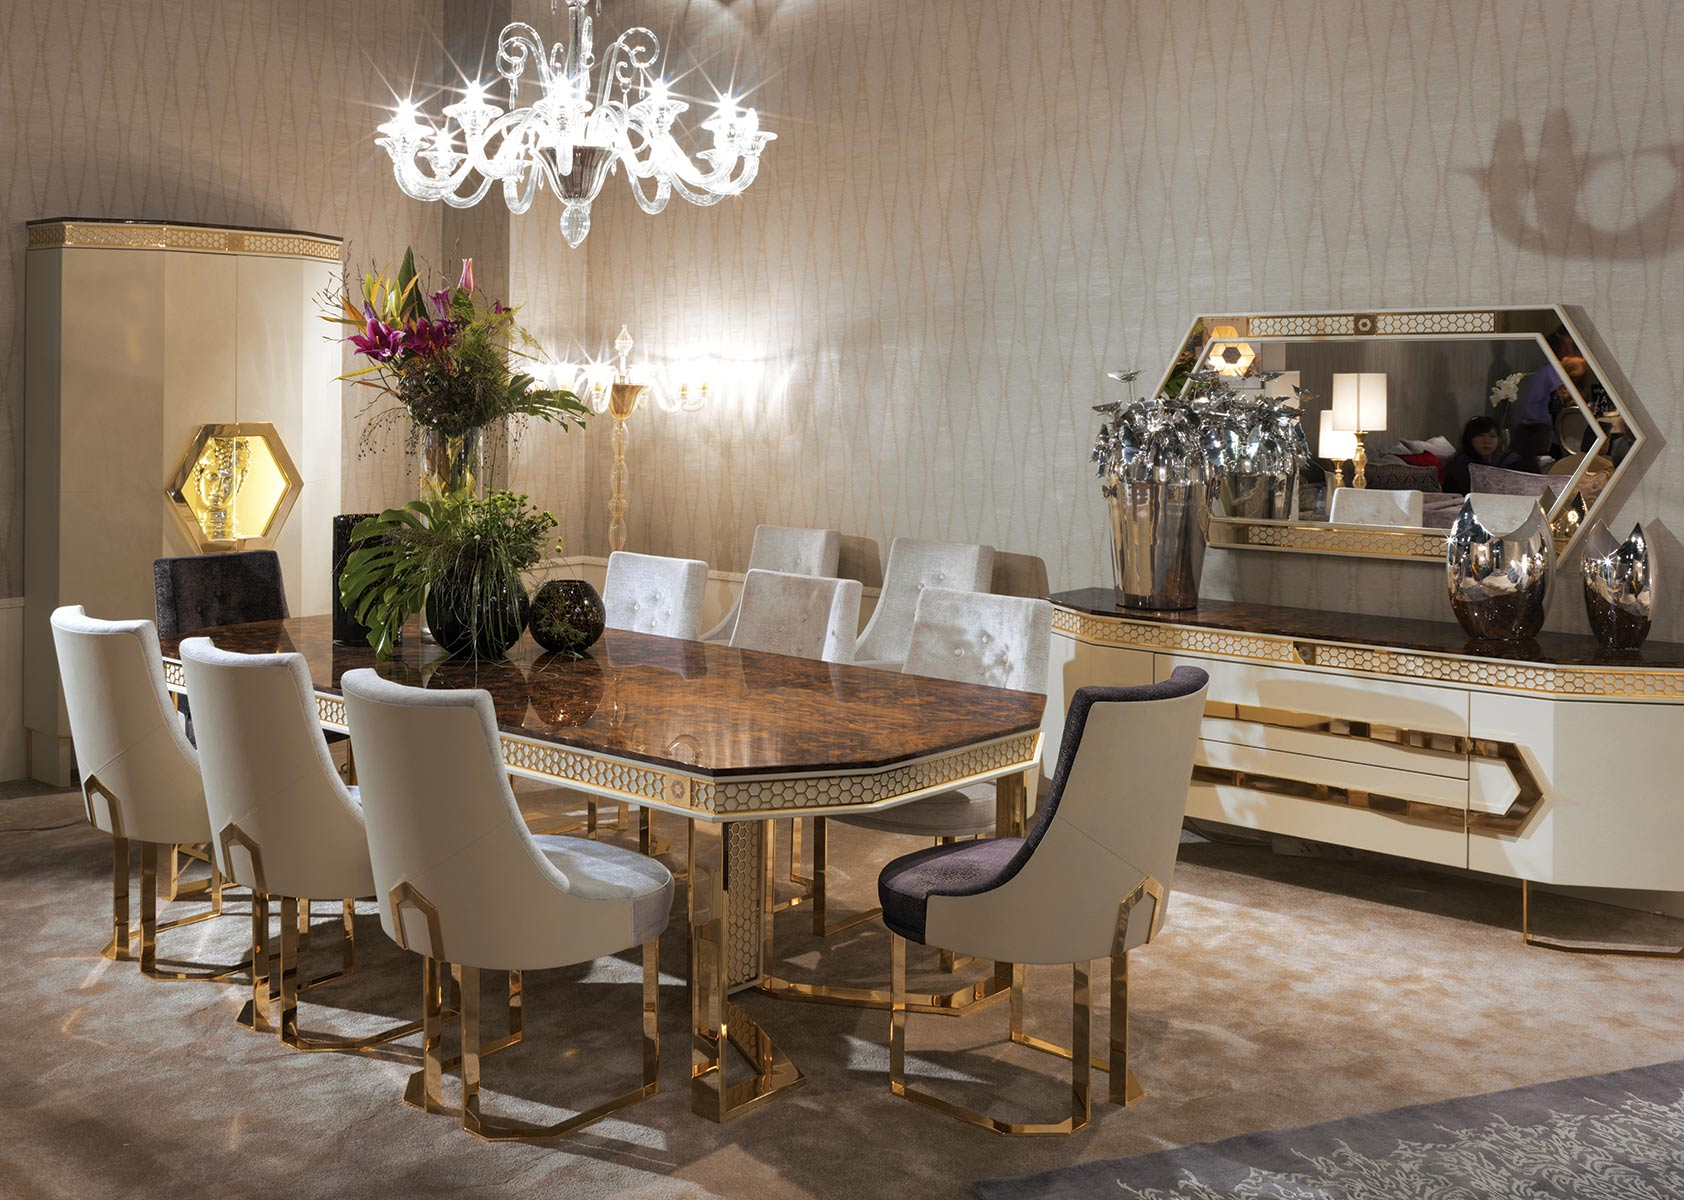 CONQUISTADOR<br/>GL/TA/RE/260/1 - Rectangular Dining Table - cm 260x120x75h<br/>GM/001/A - Chair - cm 59x59x93h<br/>GM/001/B - Chair - cm 59x59x93h<br/>GL/CR/198/1 - Sideboard - cm 198x54,5x81h<br/>GL/MI/160/1 - Mirror - cm 160x4x80h<br/>GL/VI/115/1 - Glass cabinet 2 doors - cm 115x47x212h